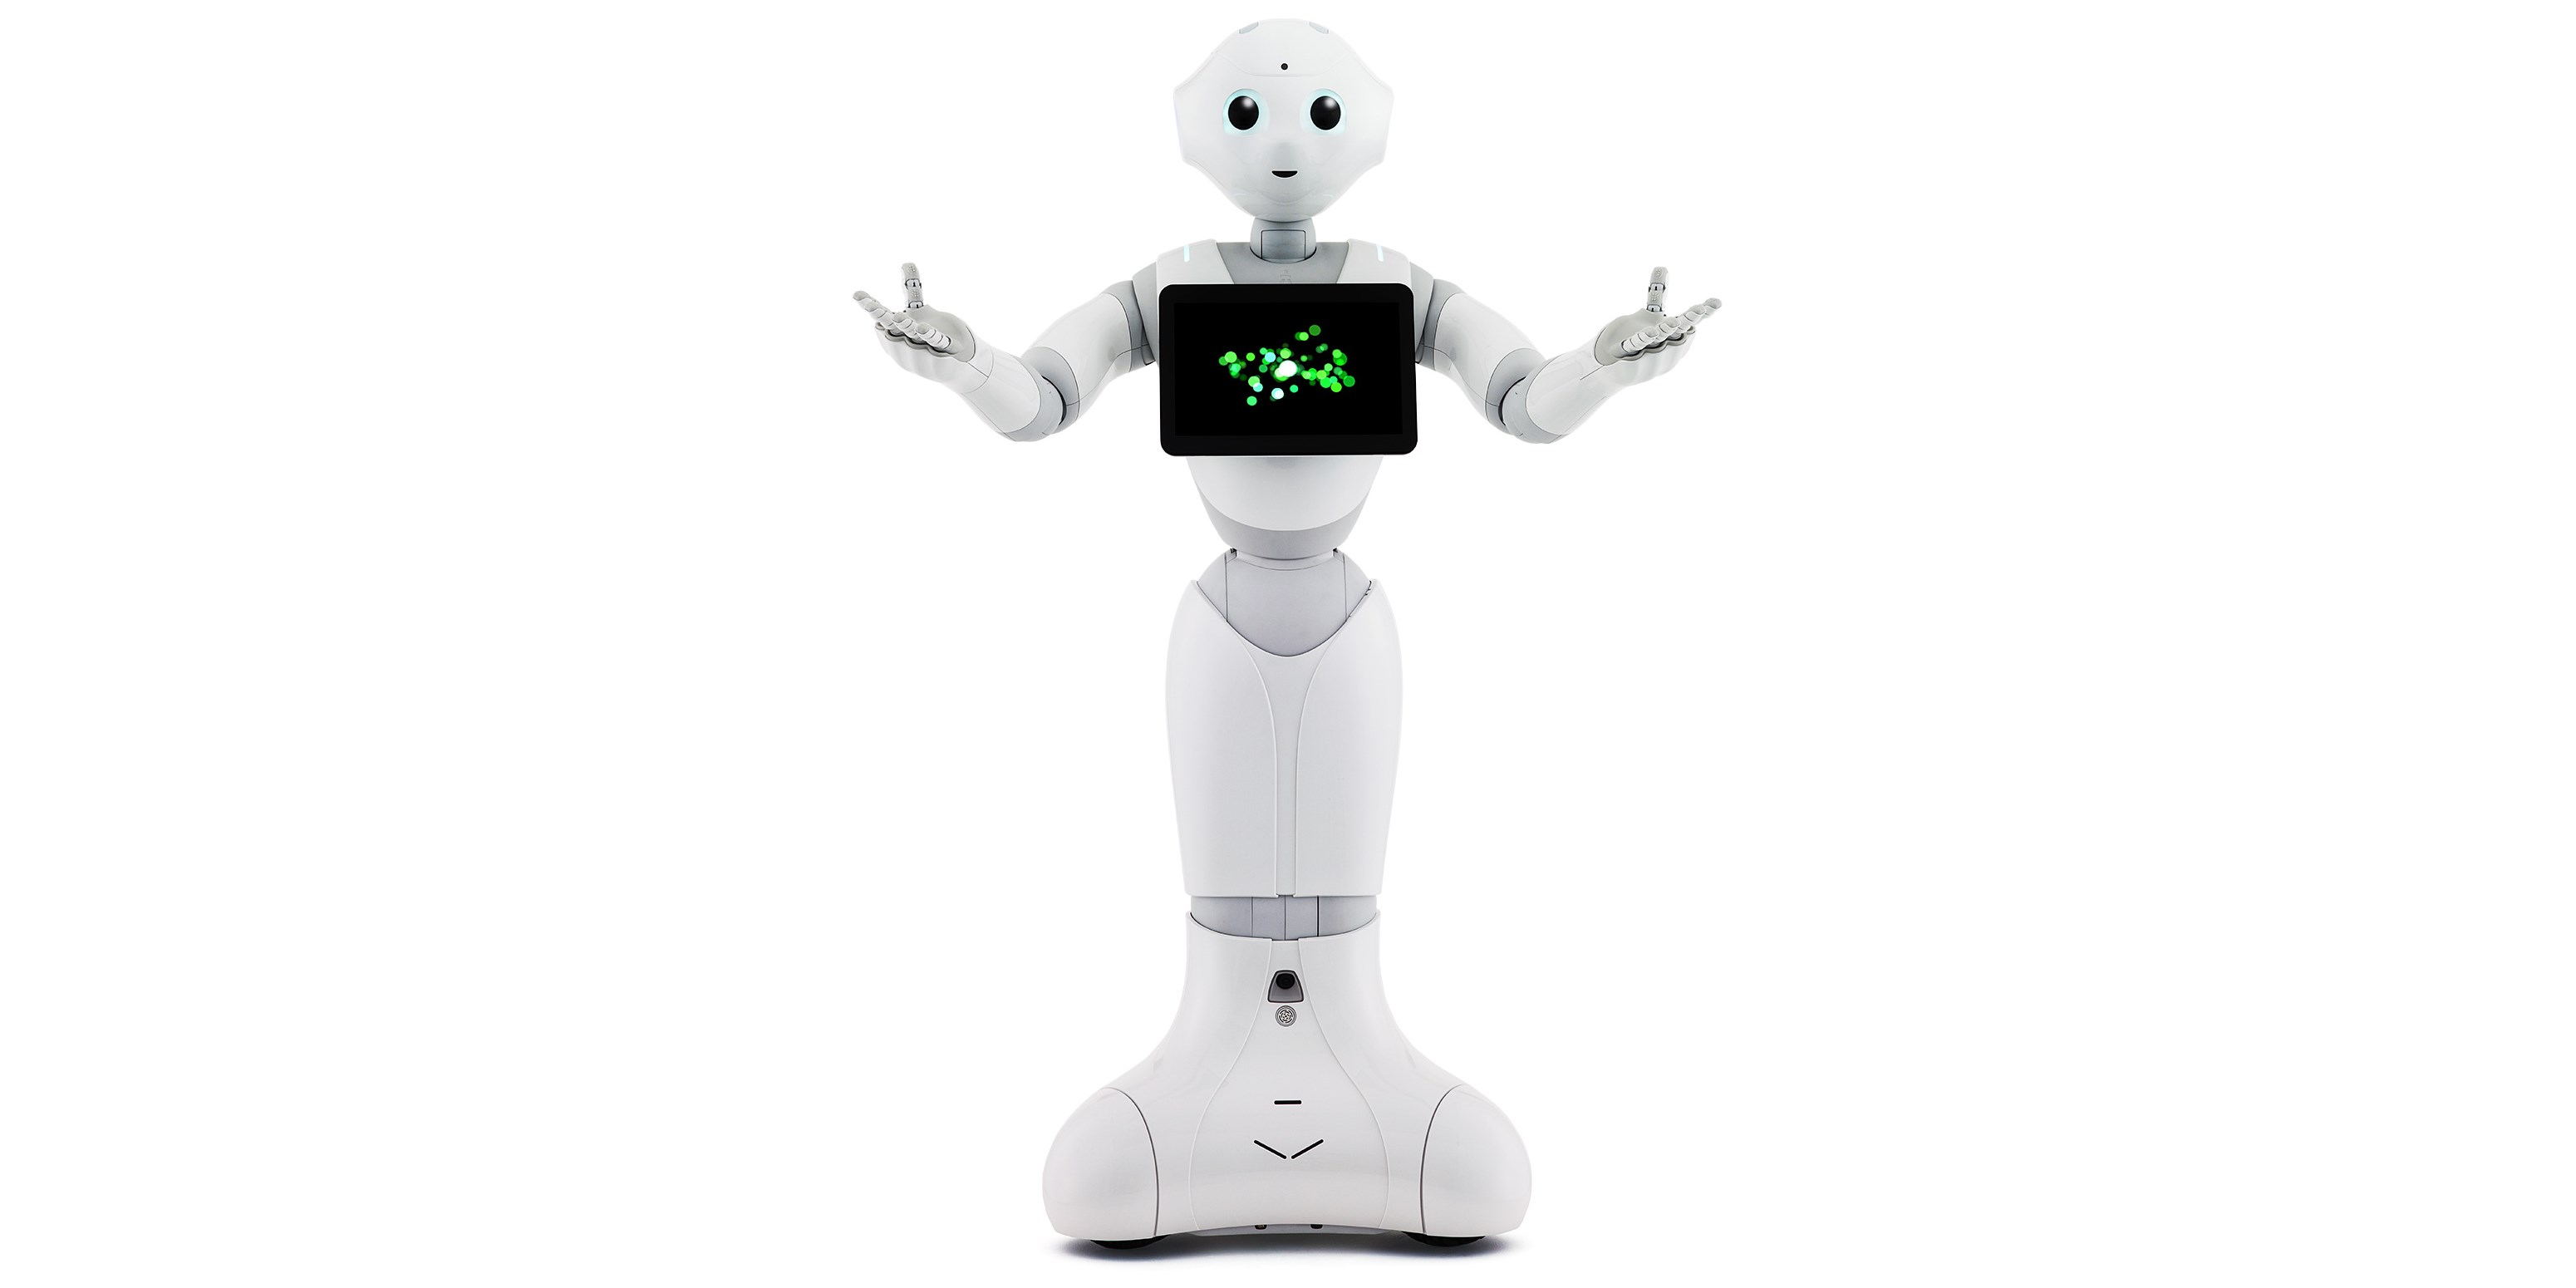 softbank u0026 39 s pepper robot will soon run a physical phone store